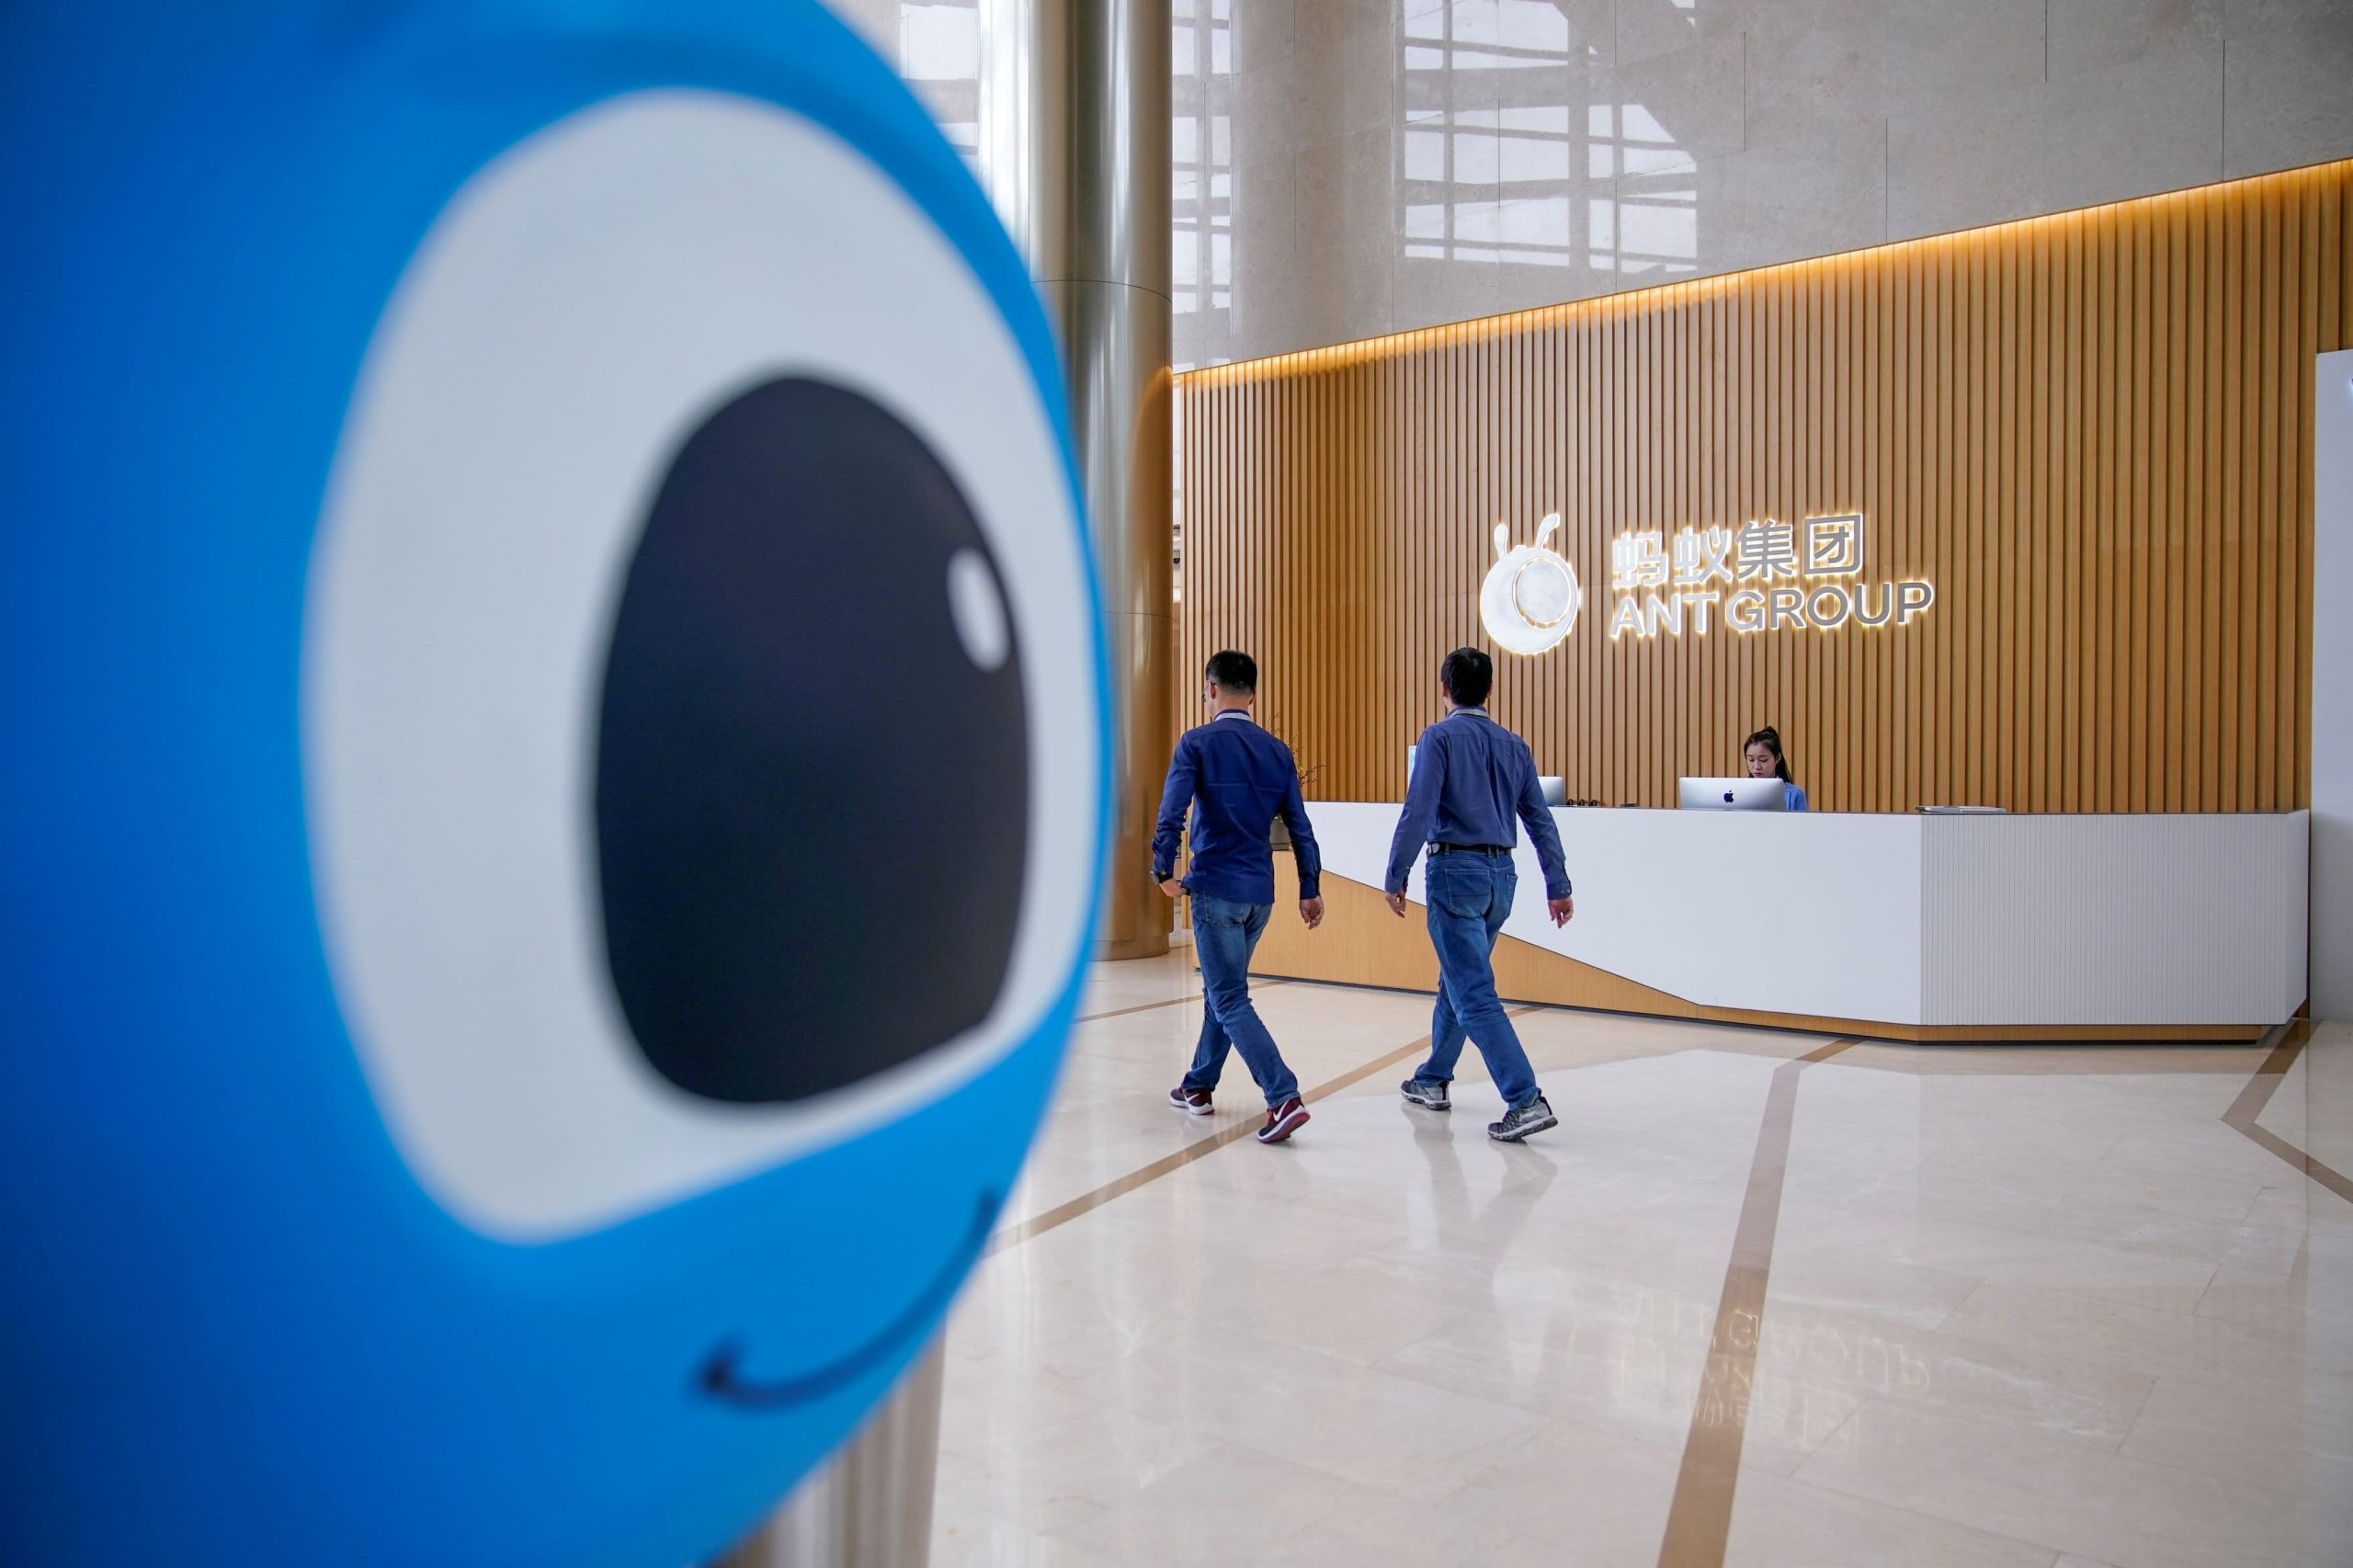 Alibaba shares rise 2% after Beijing orders Ant Group to revamp business